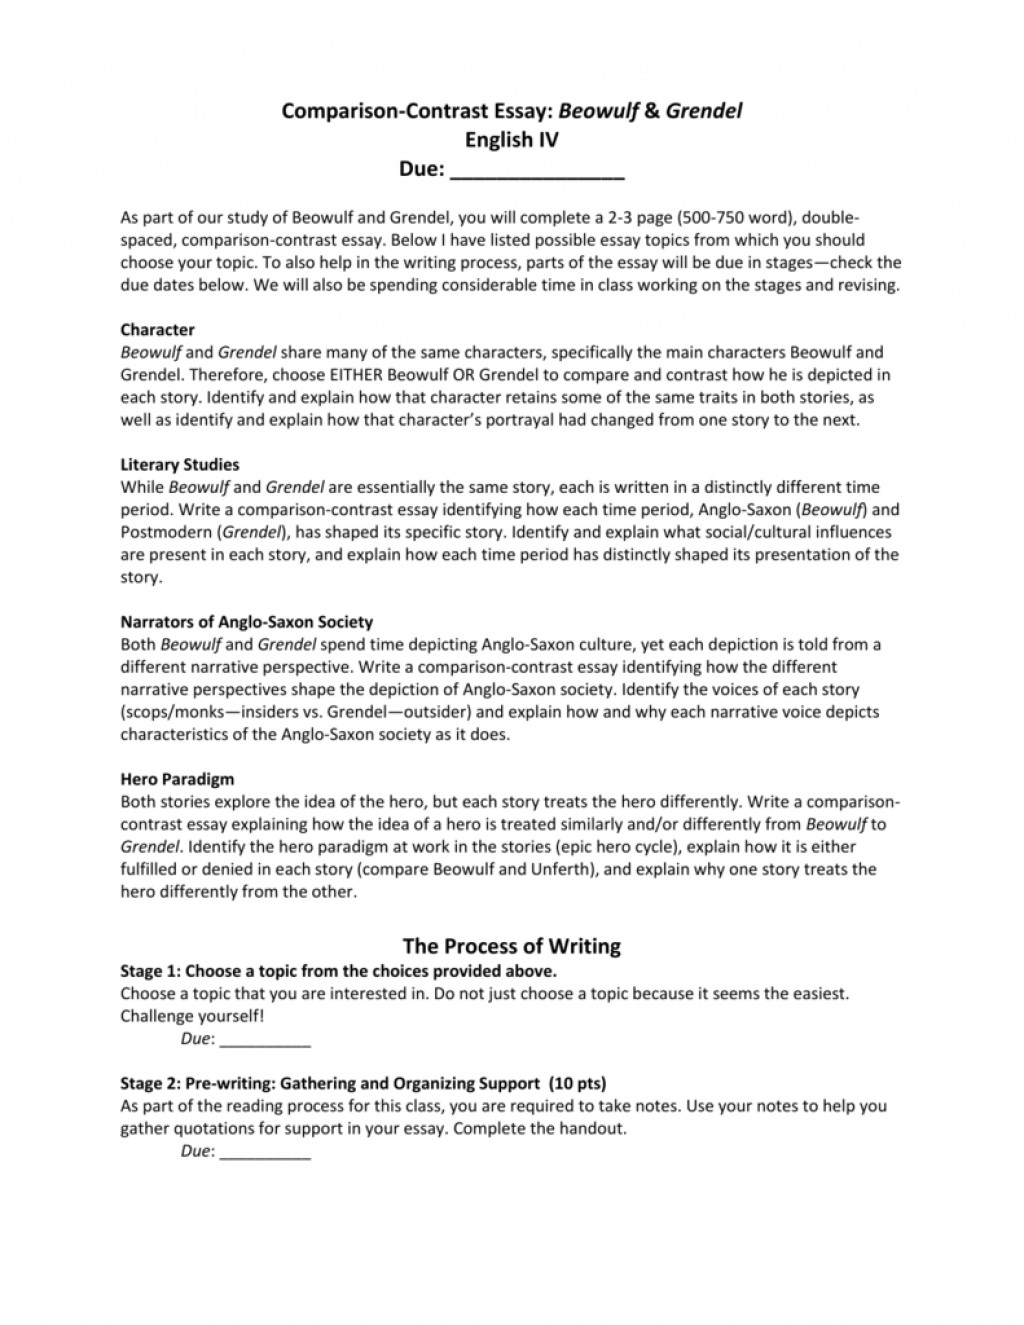 010 008061732 1 Compare And Contrast Essay Formidable A Apush Thesis Topics 2017 Large